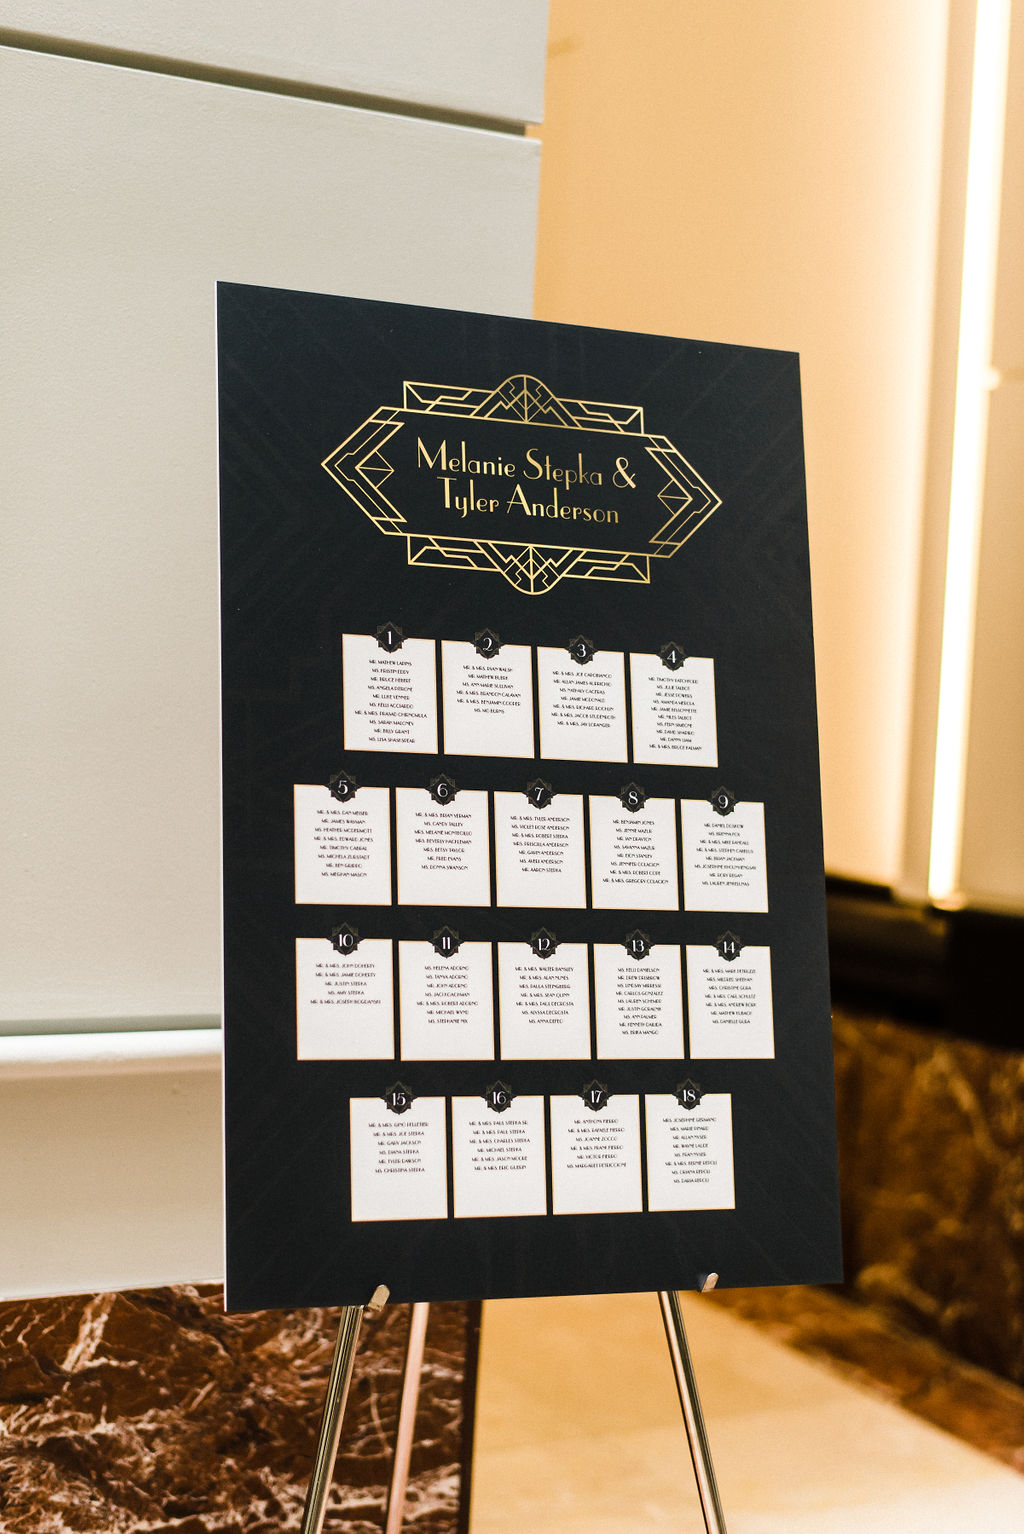 Great Gatsby themed wedding for Tyler & Melanie Anderson at the Goodwin hotel in Hartford, CT.  - Pearl Weddings & Event